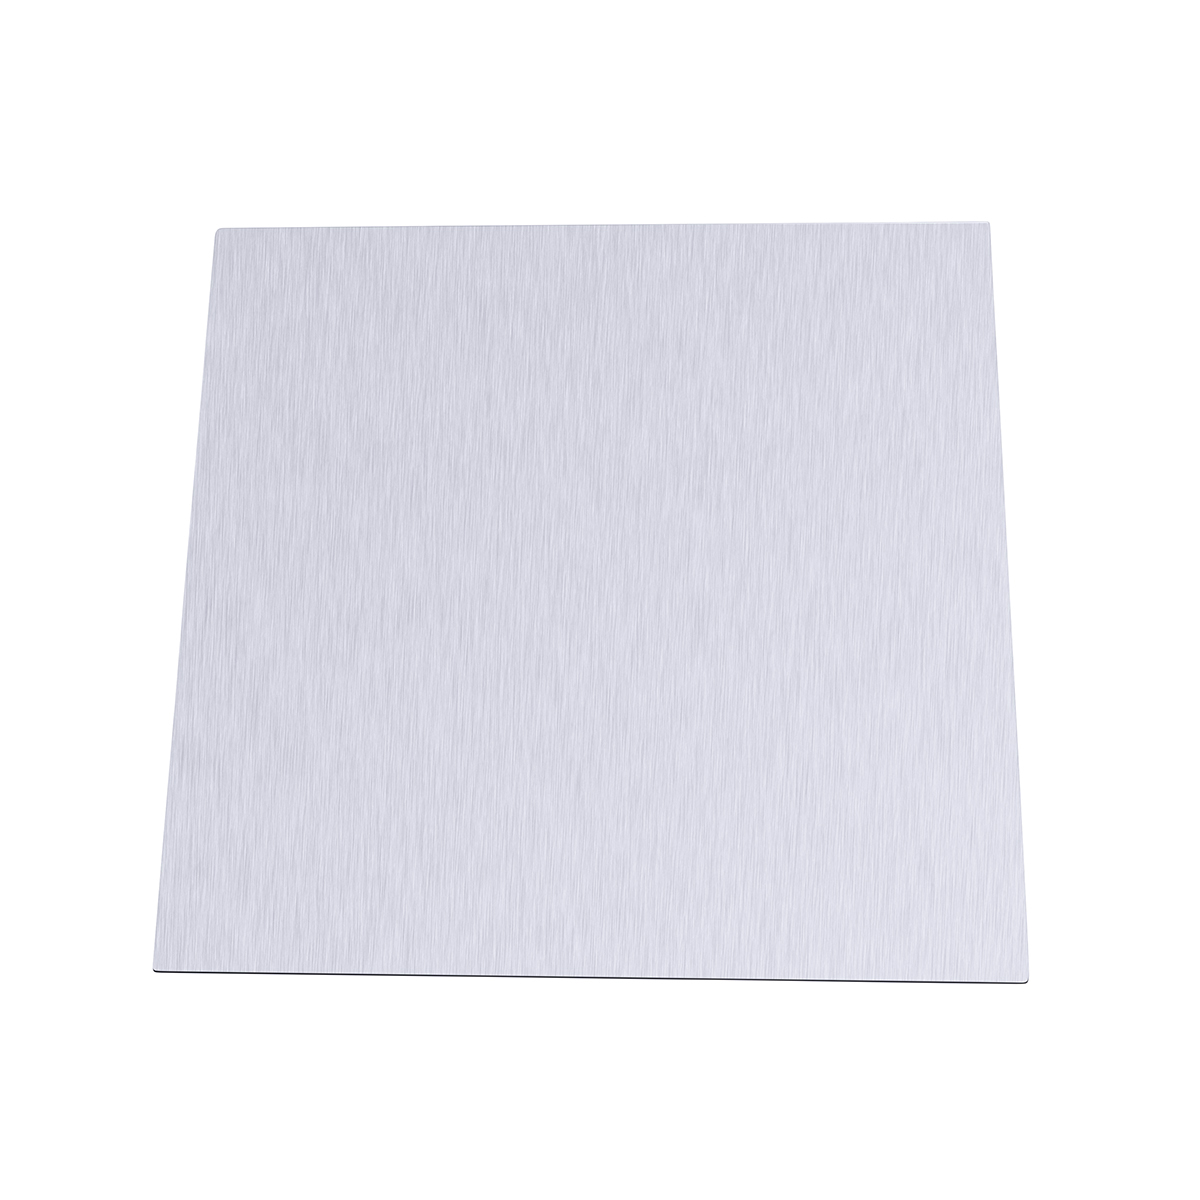 1Pcs 100x100x0.5mm Zinc Sheet High Purity Pure Zinc Zn Sheet Plate Metal Foil For Science For Tool Parts